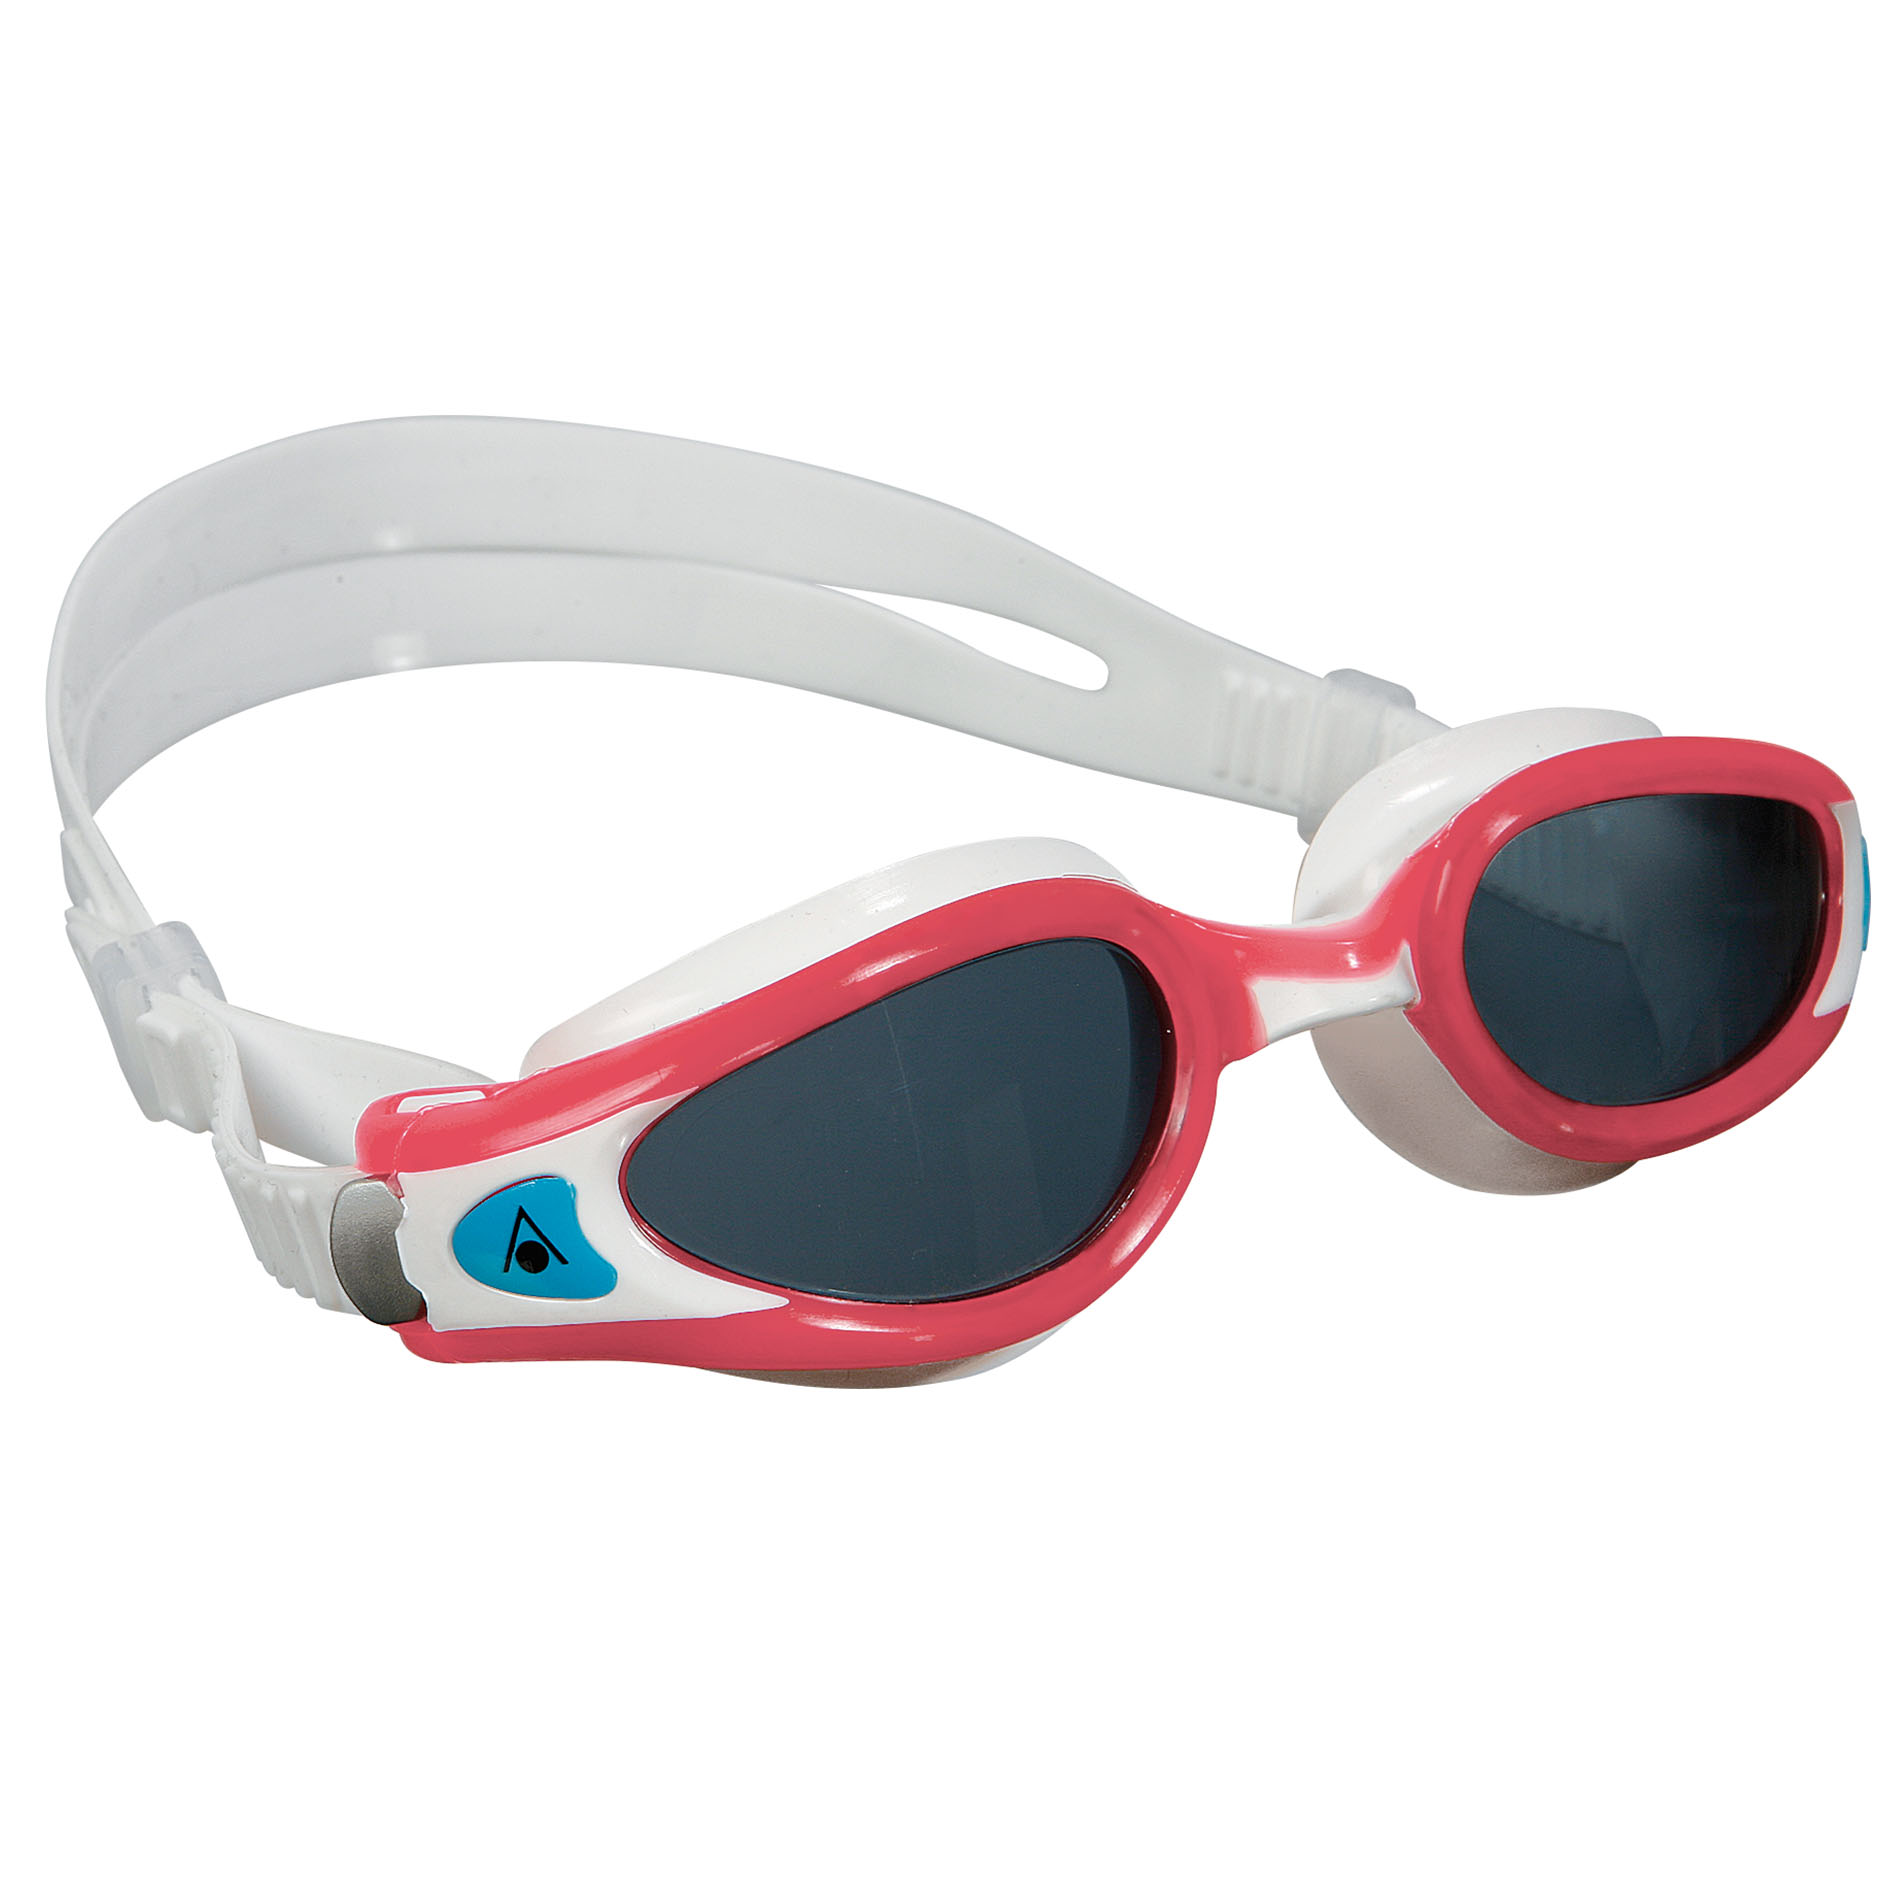 Aqua Sphere Kaiman Exo Ladies Swimming Goggles  Tinted Lens  RedWhite